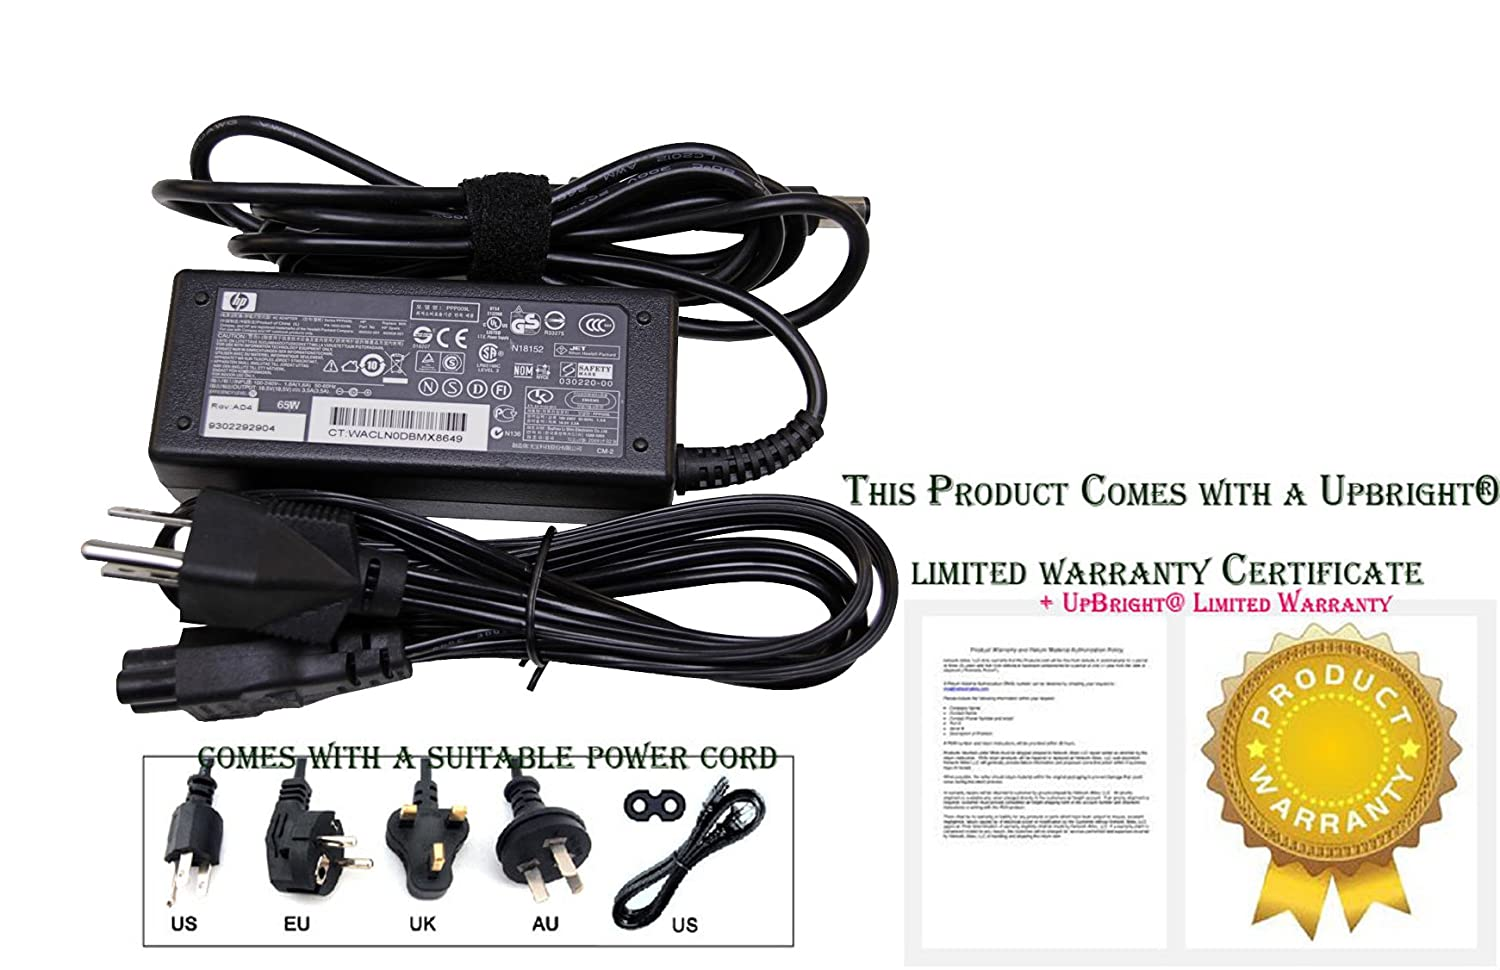 Amazon.com: Laptop Notebook Charger for HP HP PAVILION g7-1219wm 18.5V 3.5A 65W Adapter Adaptor Power Supply (US Power Cord Included): Computers & ...